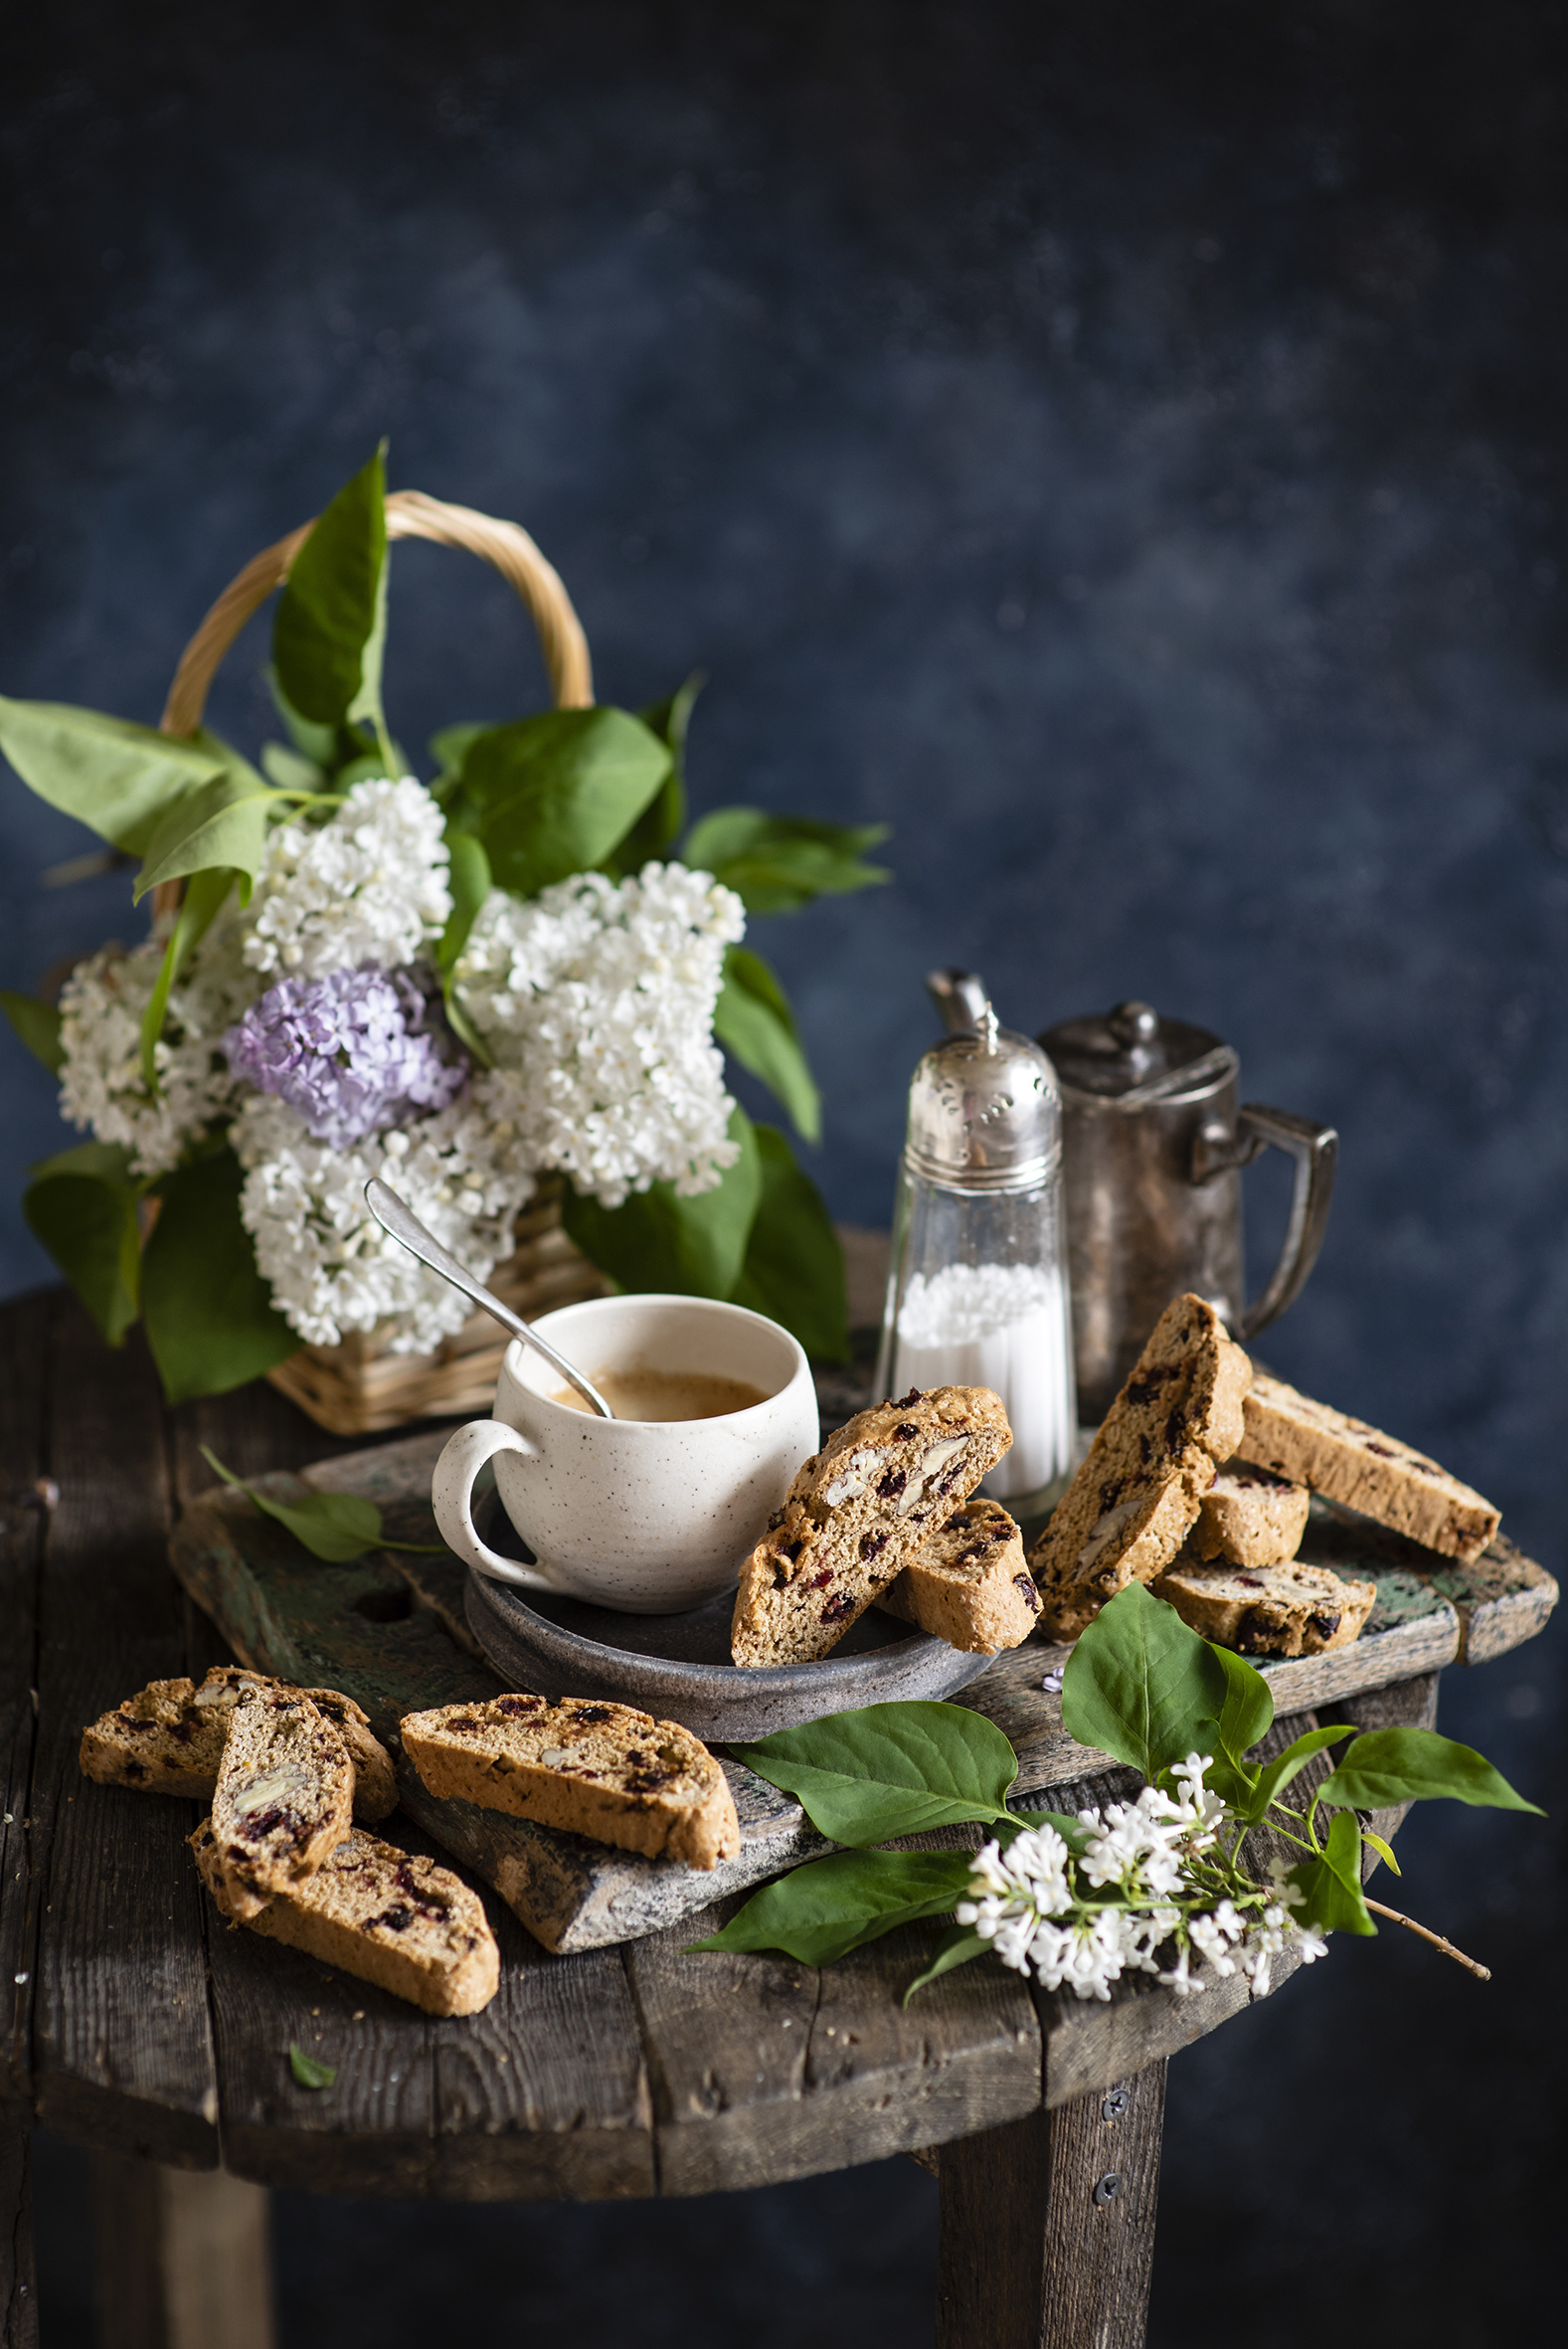 Photo Coffee Flowers Syringa Cup Food Branches Pastry Still-life  for Mobile phone Lilac flower baking